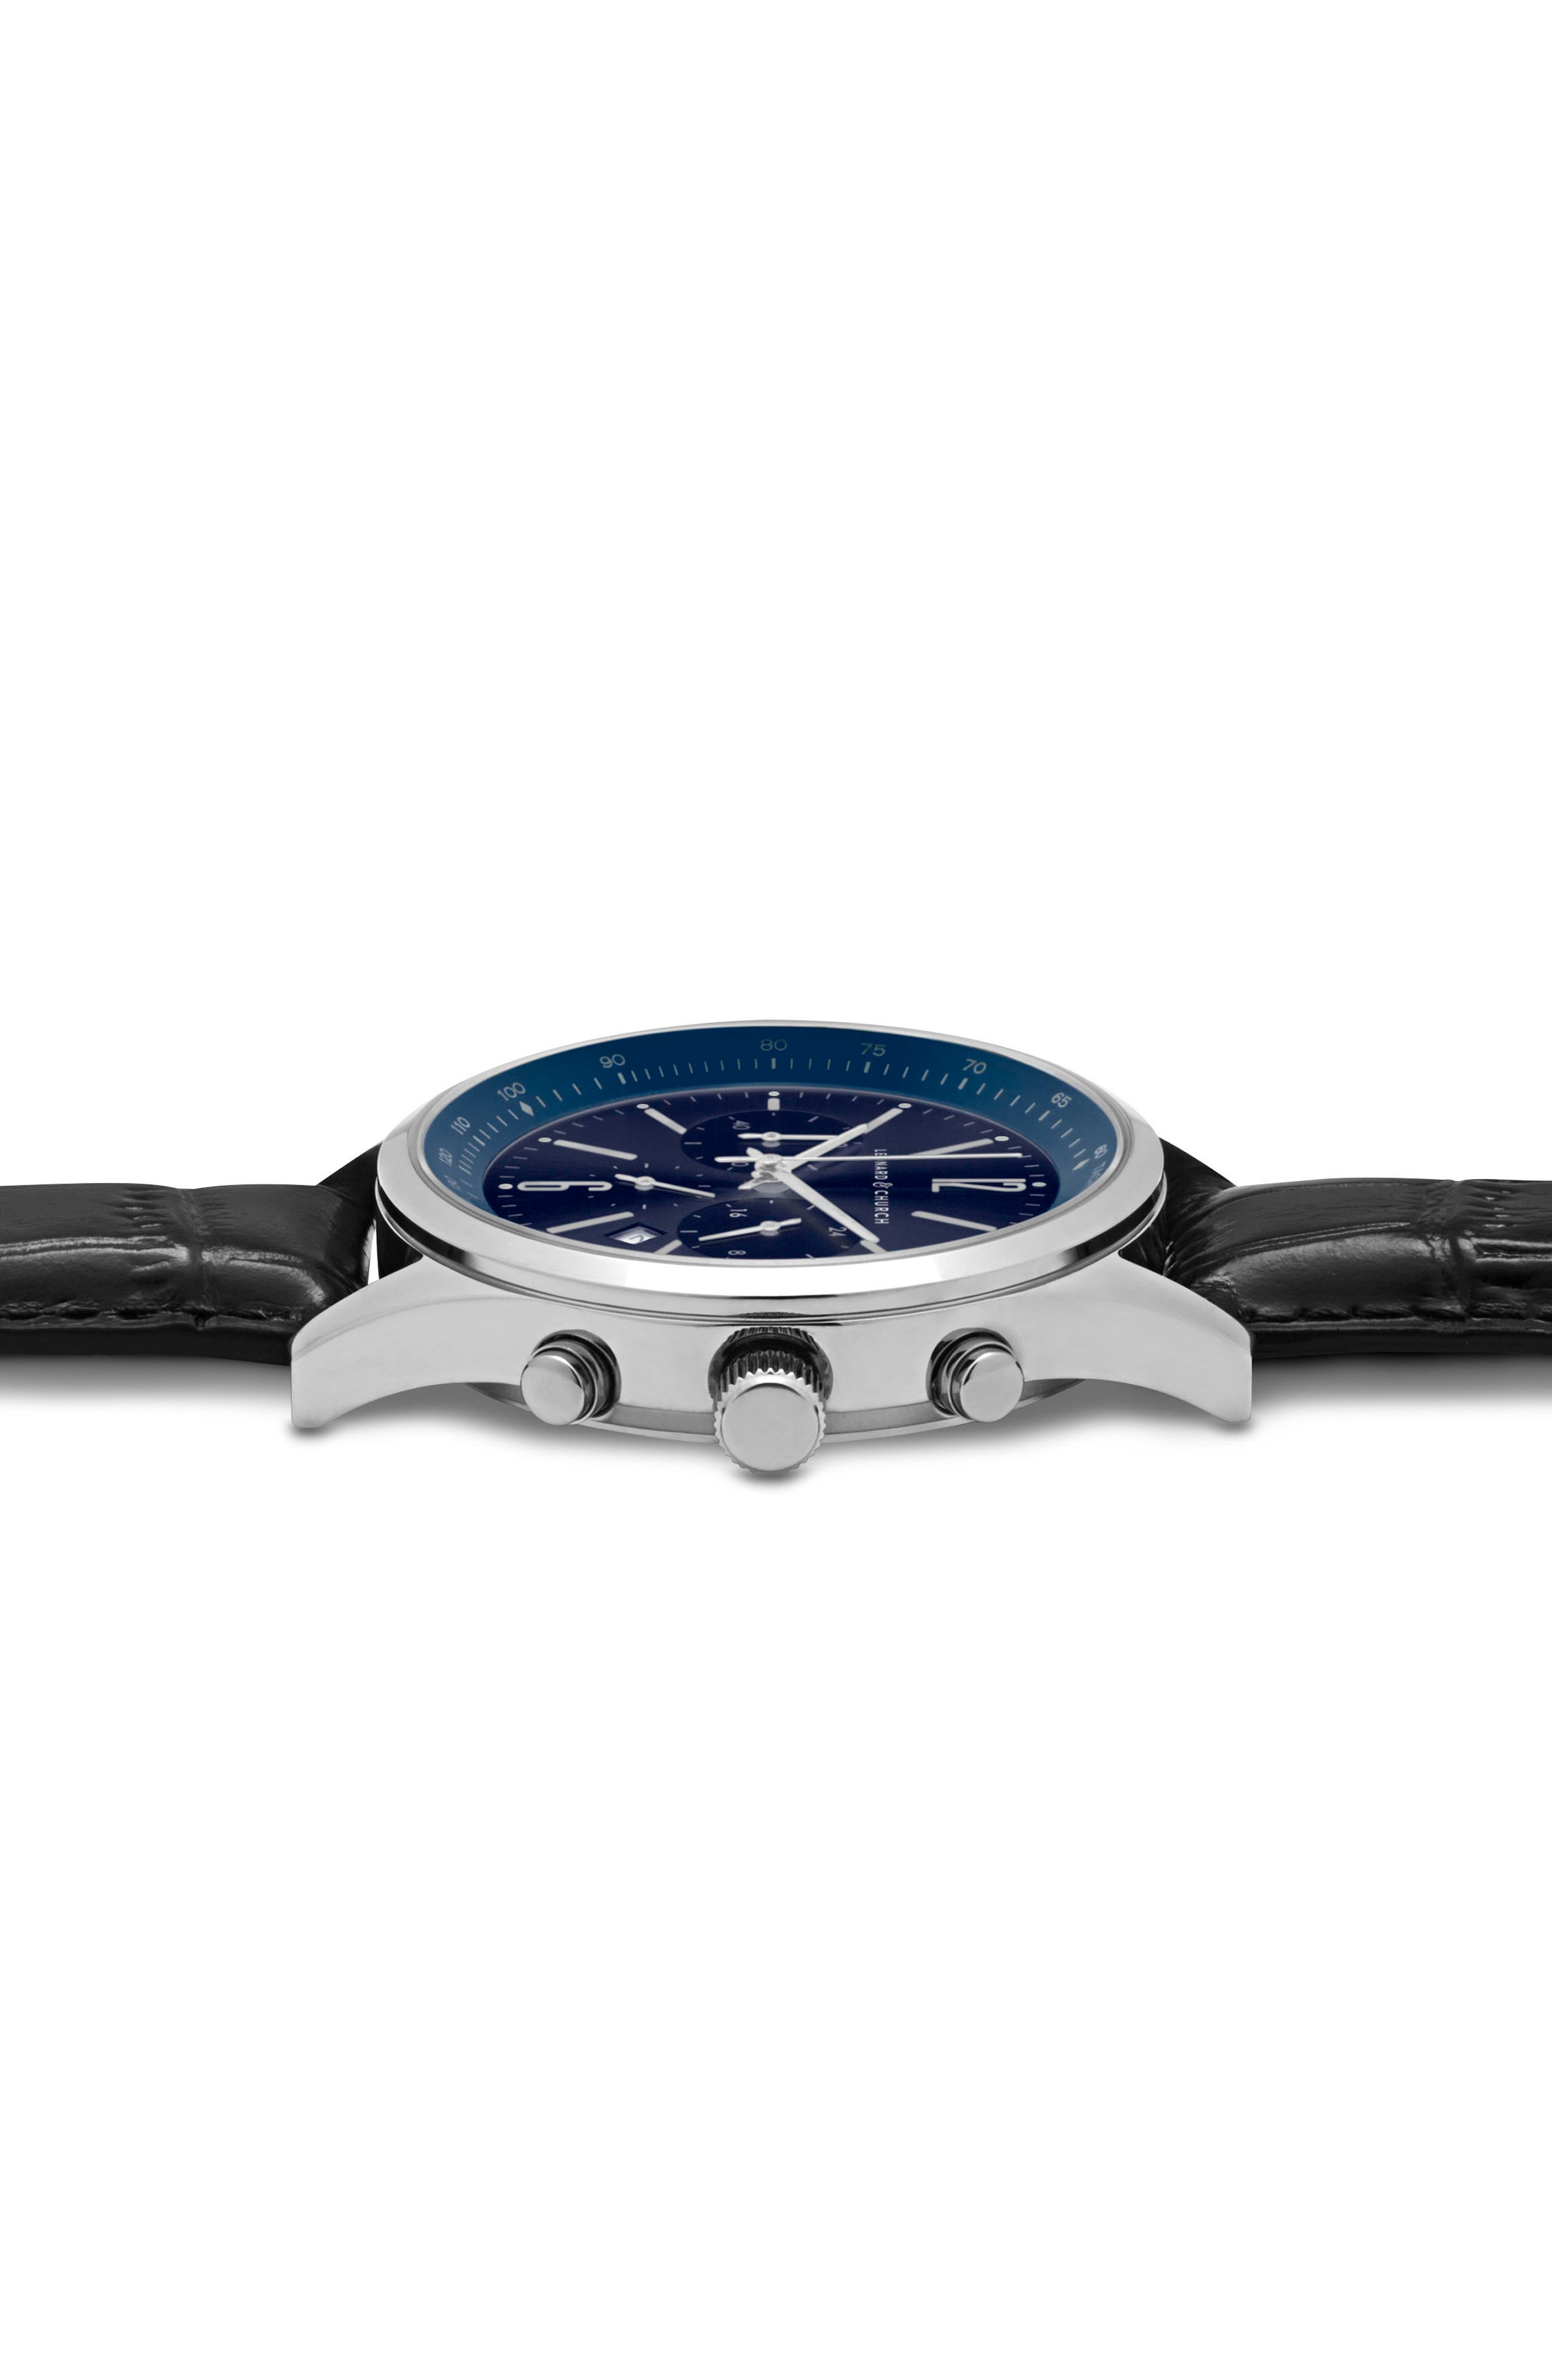 Leonard & Church Barclay Chronograph Leather Strap Watch, 43mm,                             Alternate thumbnail 6, color,                             BLACK/ BLUE/ SILVER